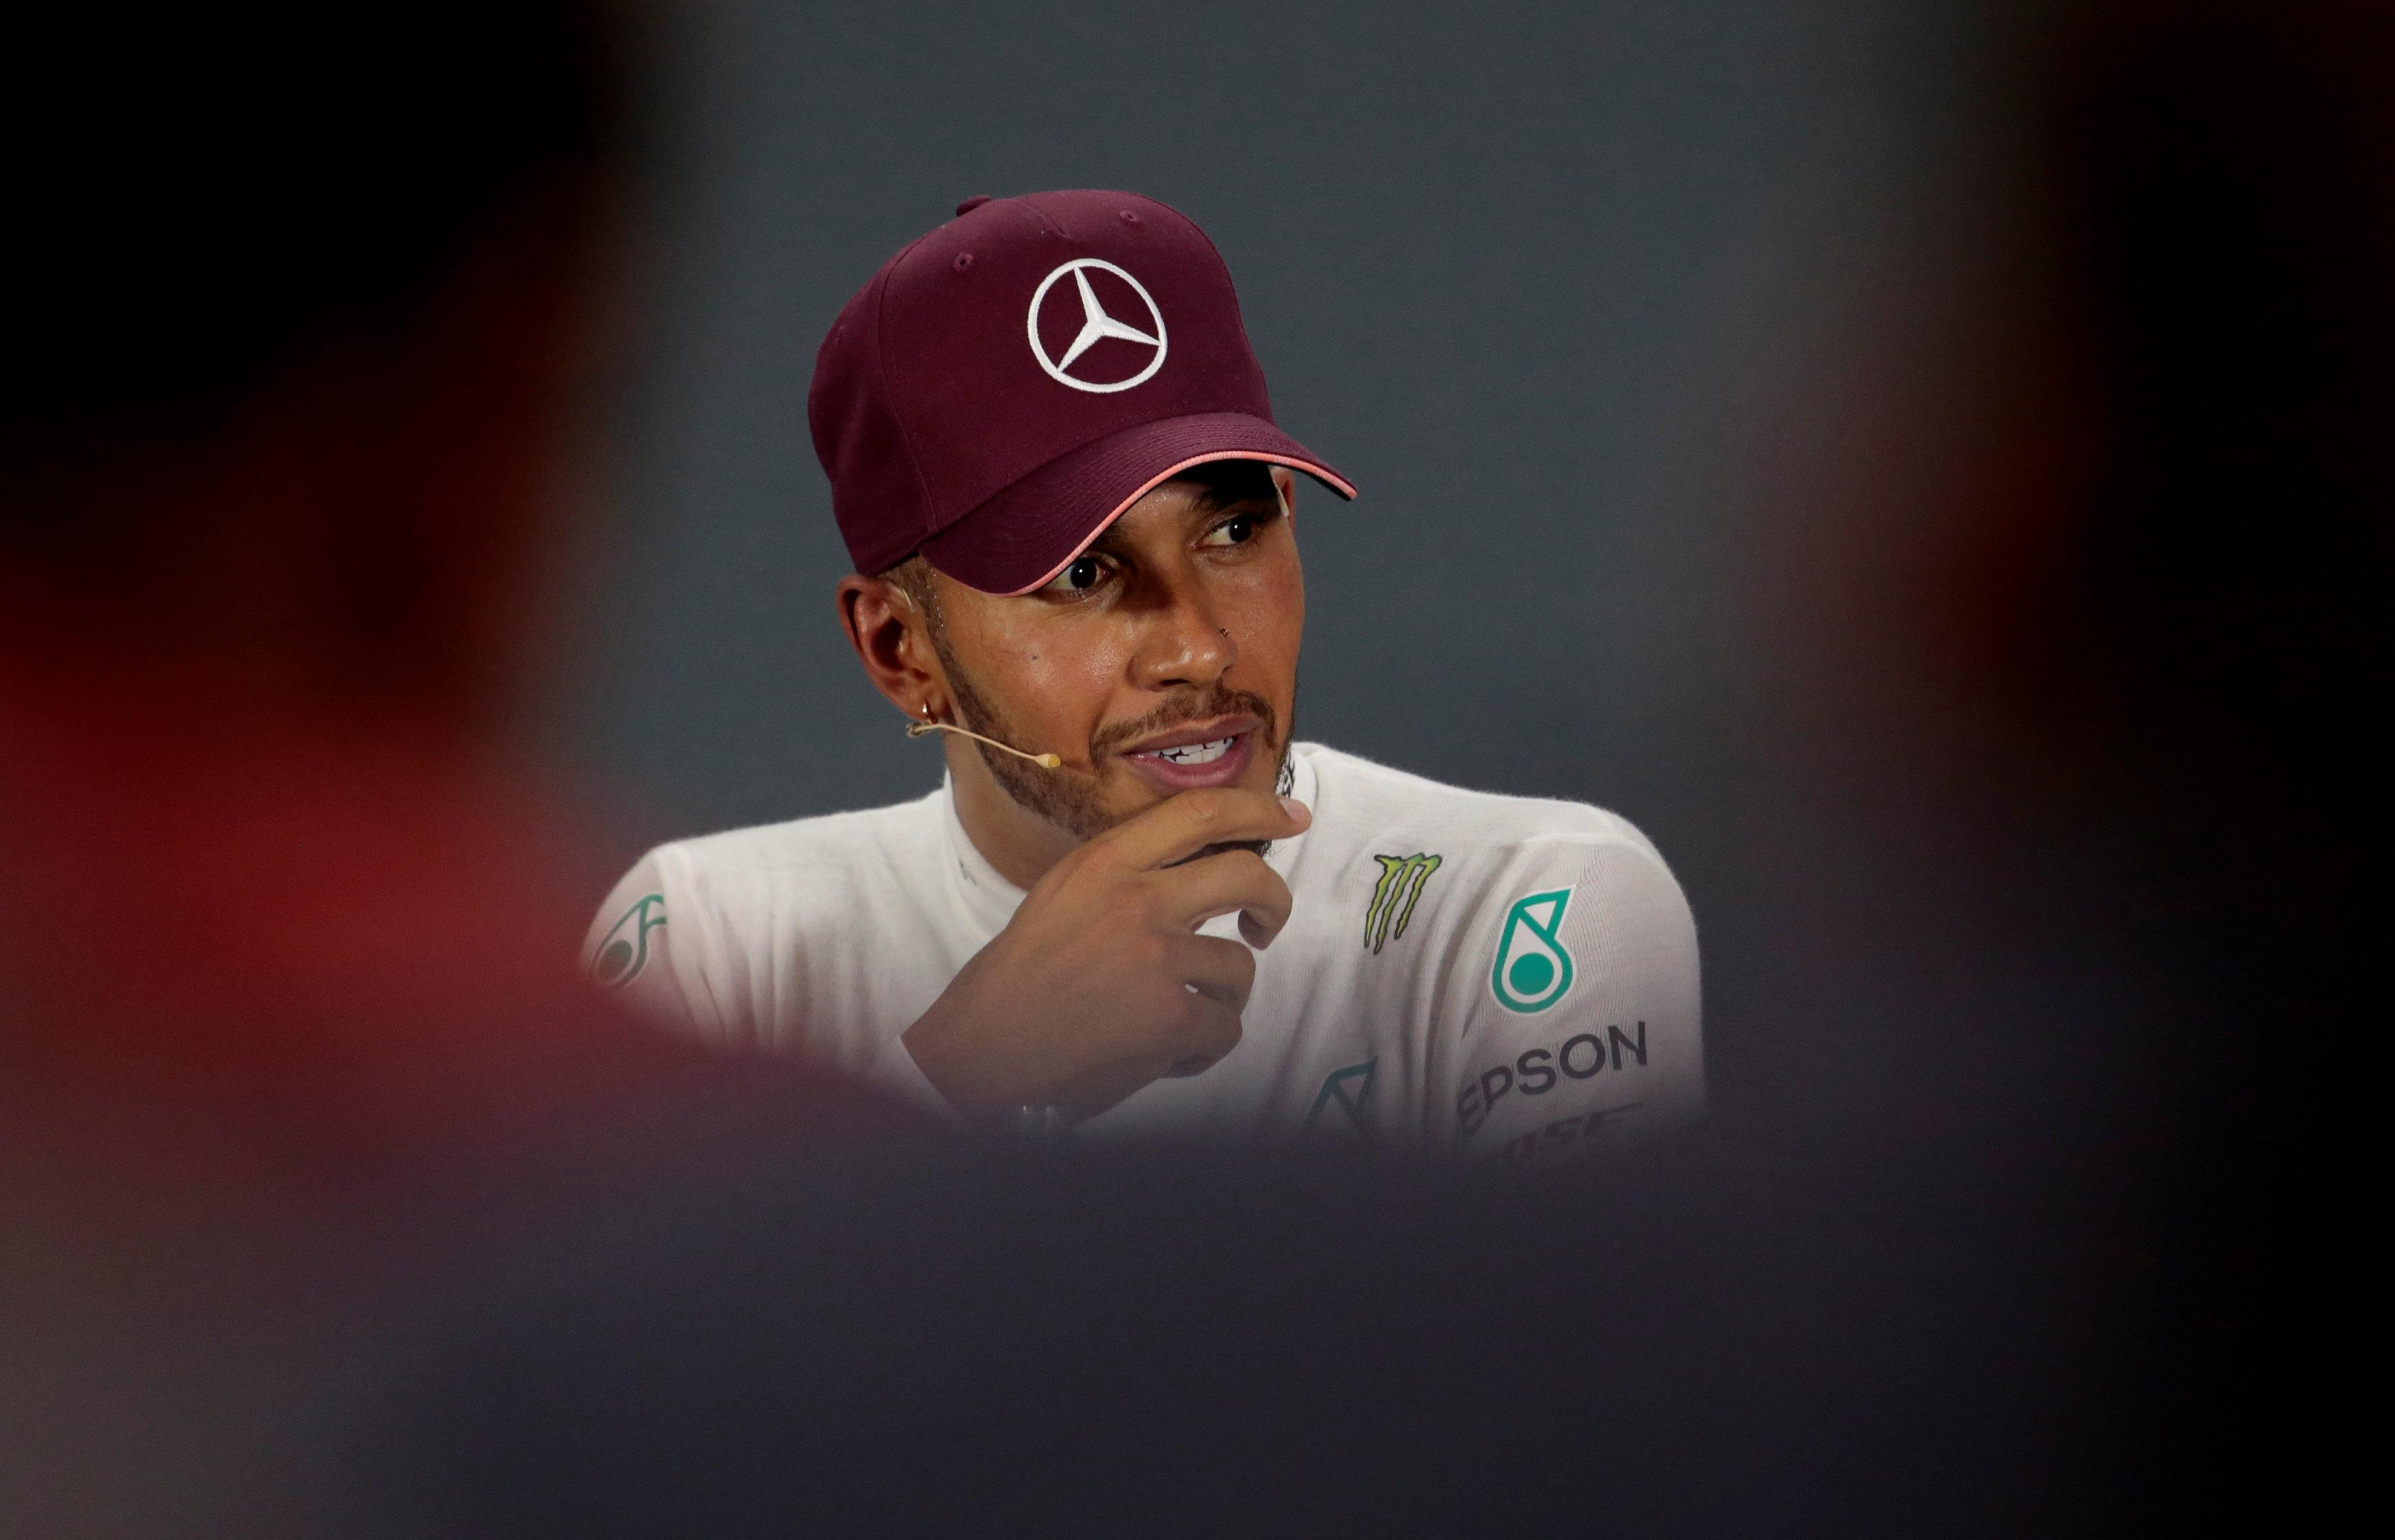 Mercedes are over-delivering, says Hamilton